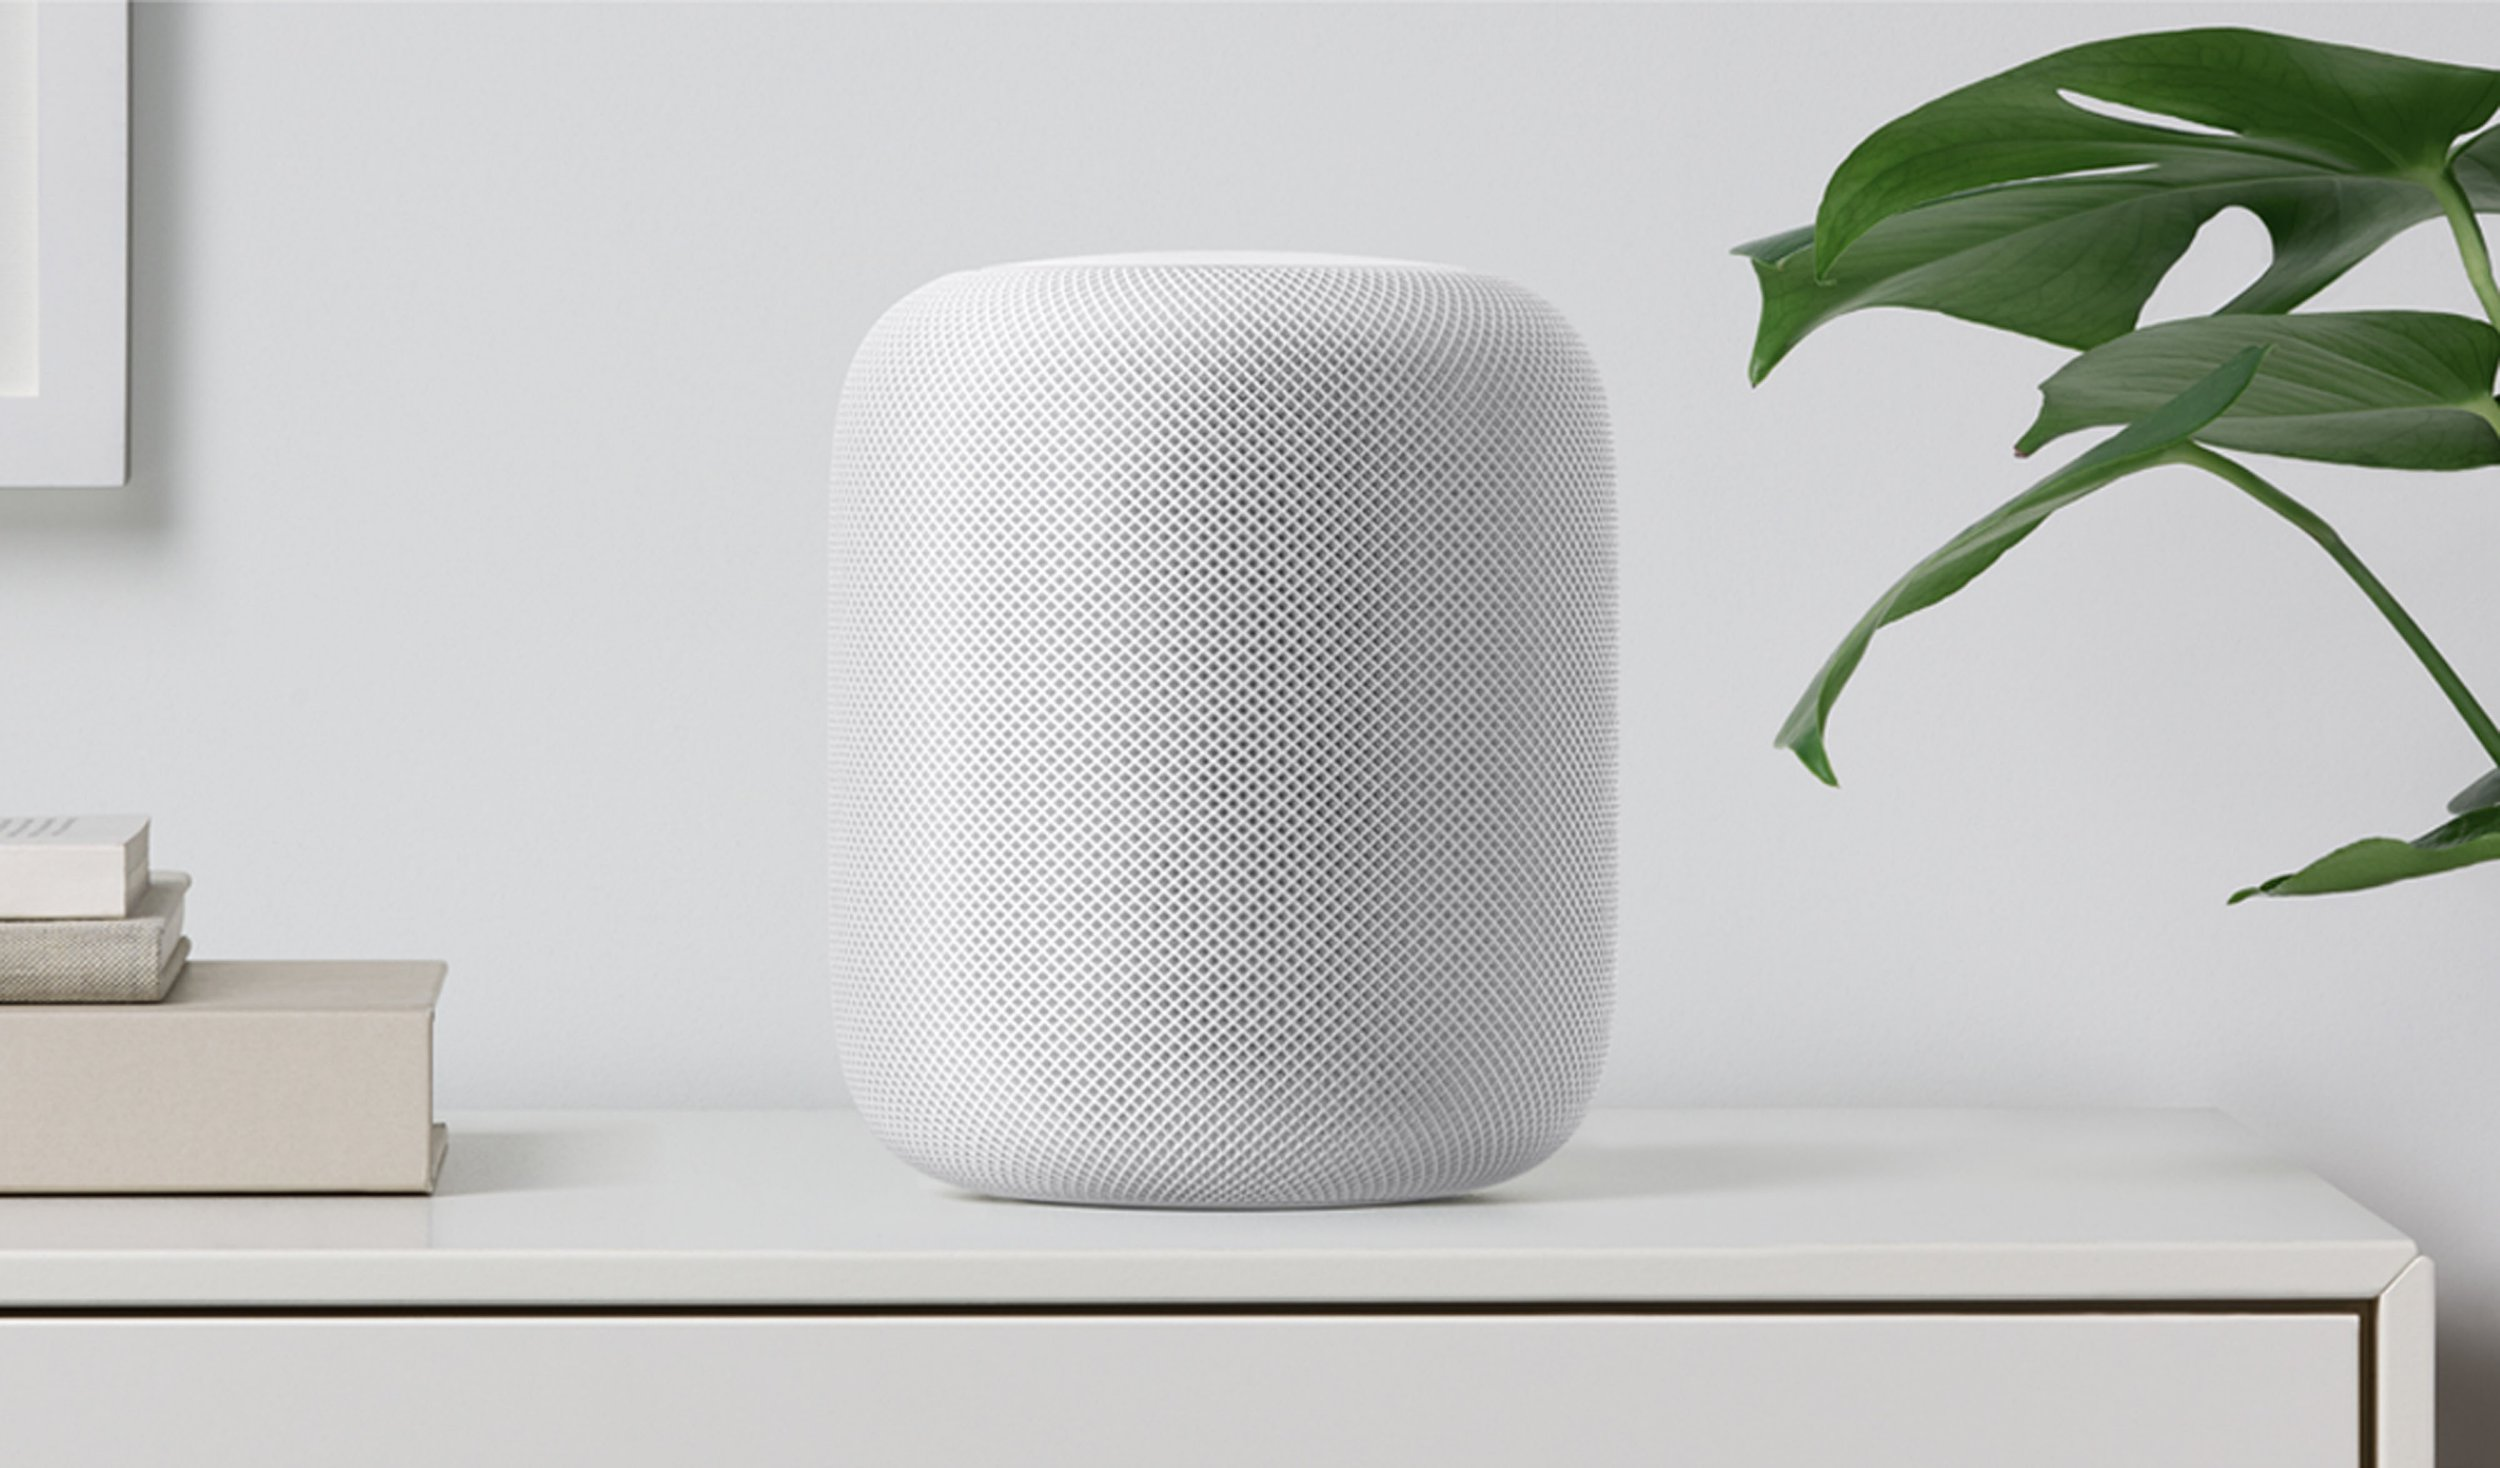 Apple's HomePod smart speaker just got a global price cut